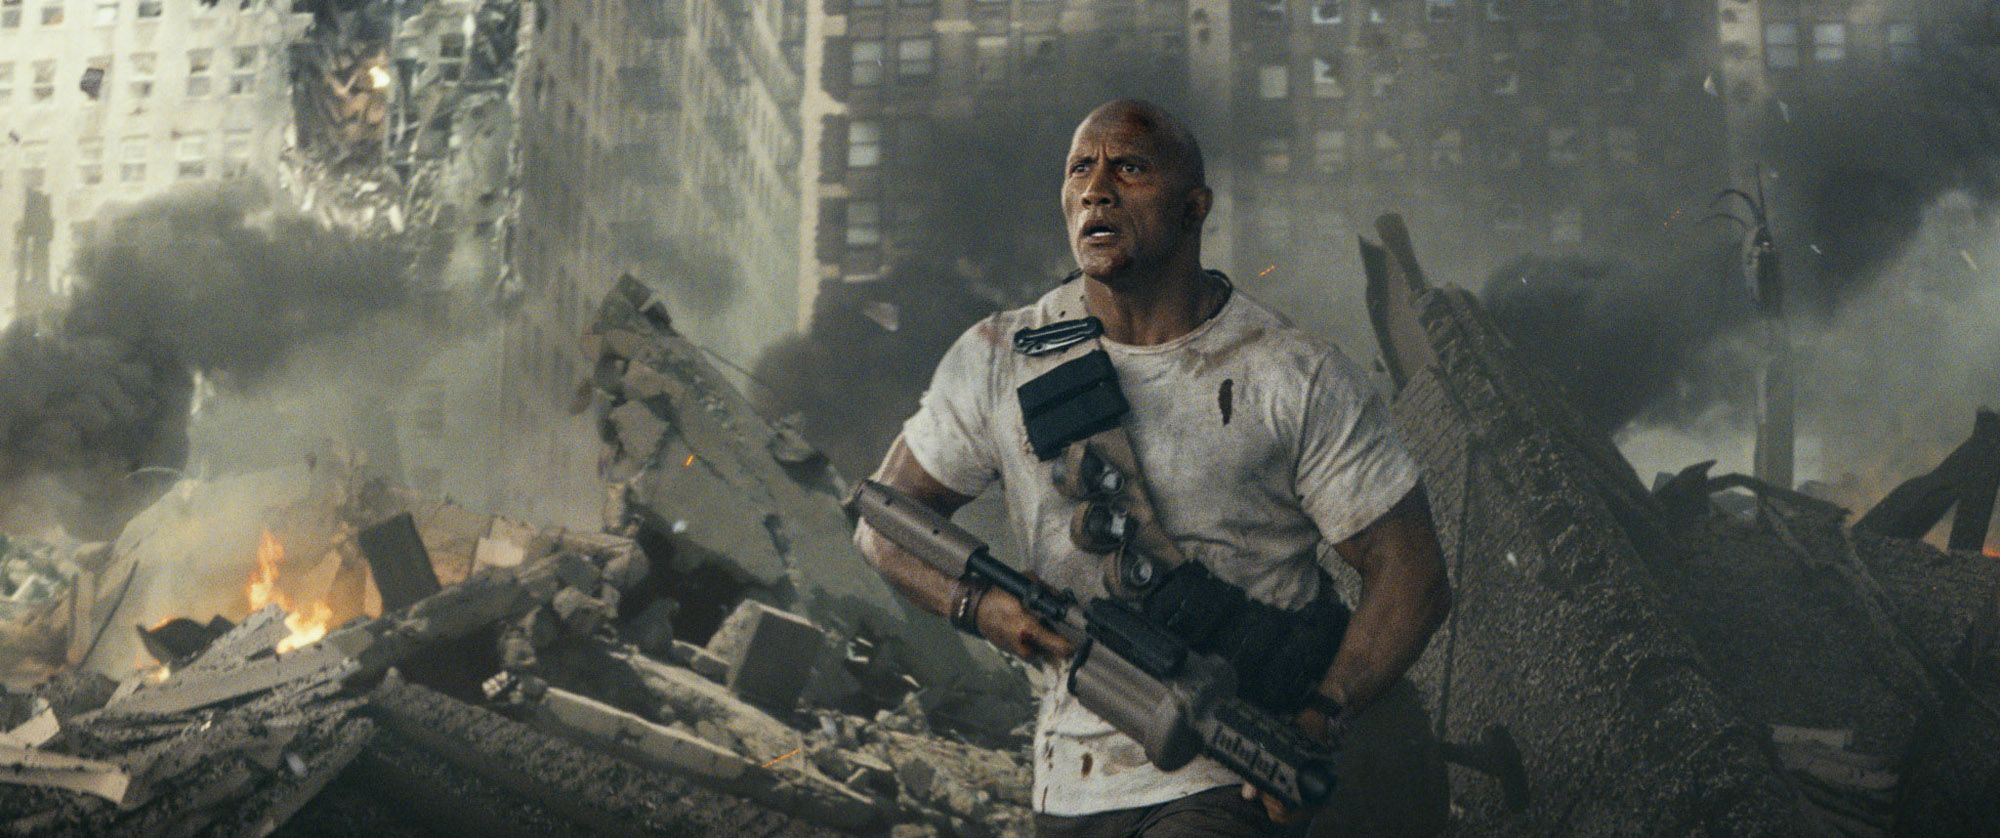 rampage dwayne johnson - 'Rampage' to Hit Theaters a Week Early After 'Avengers' Release Date Switch